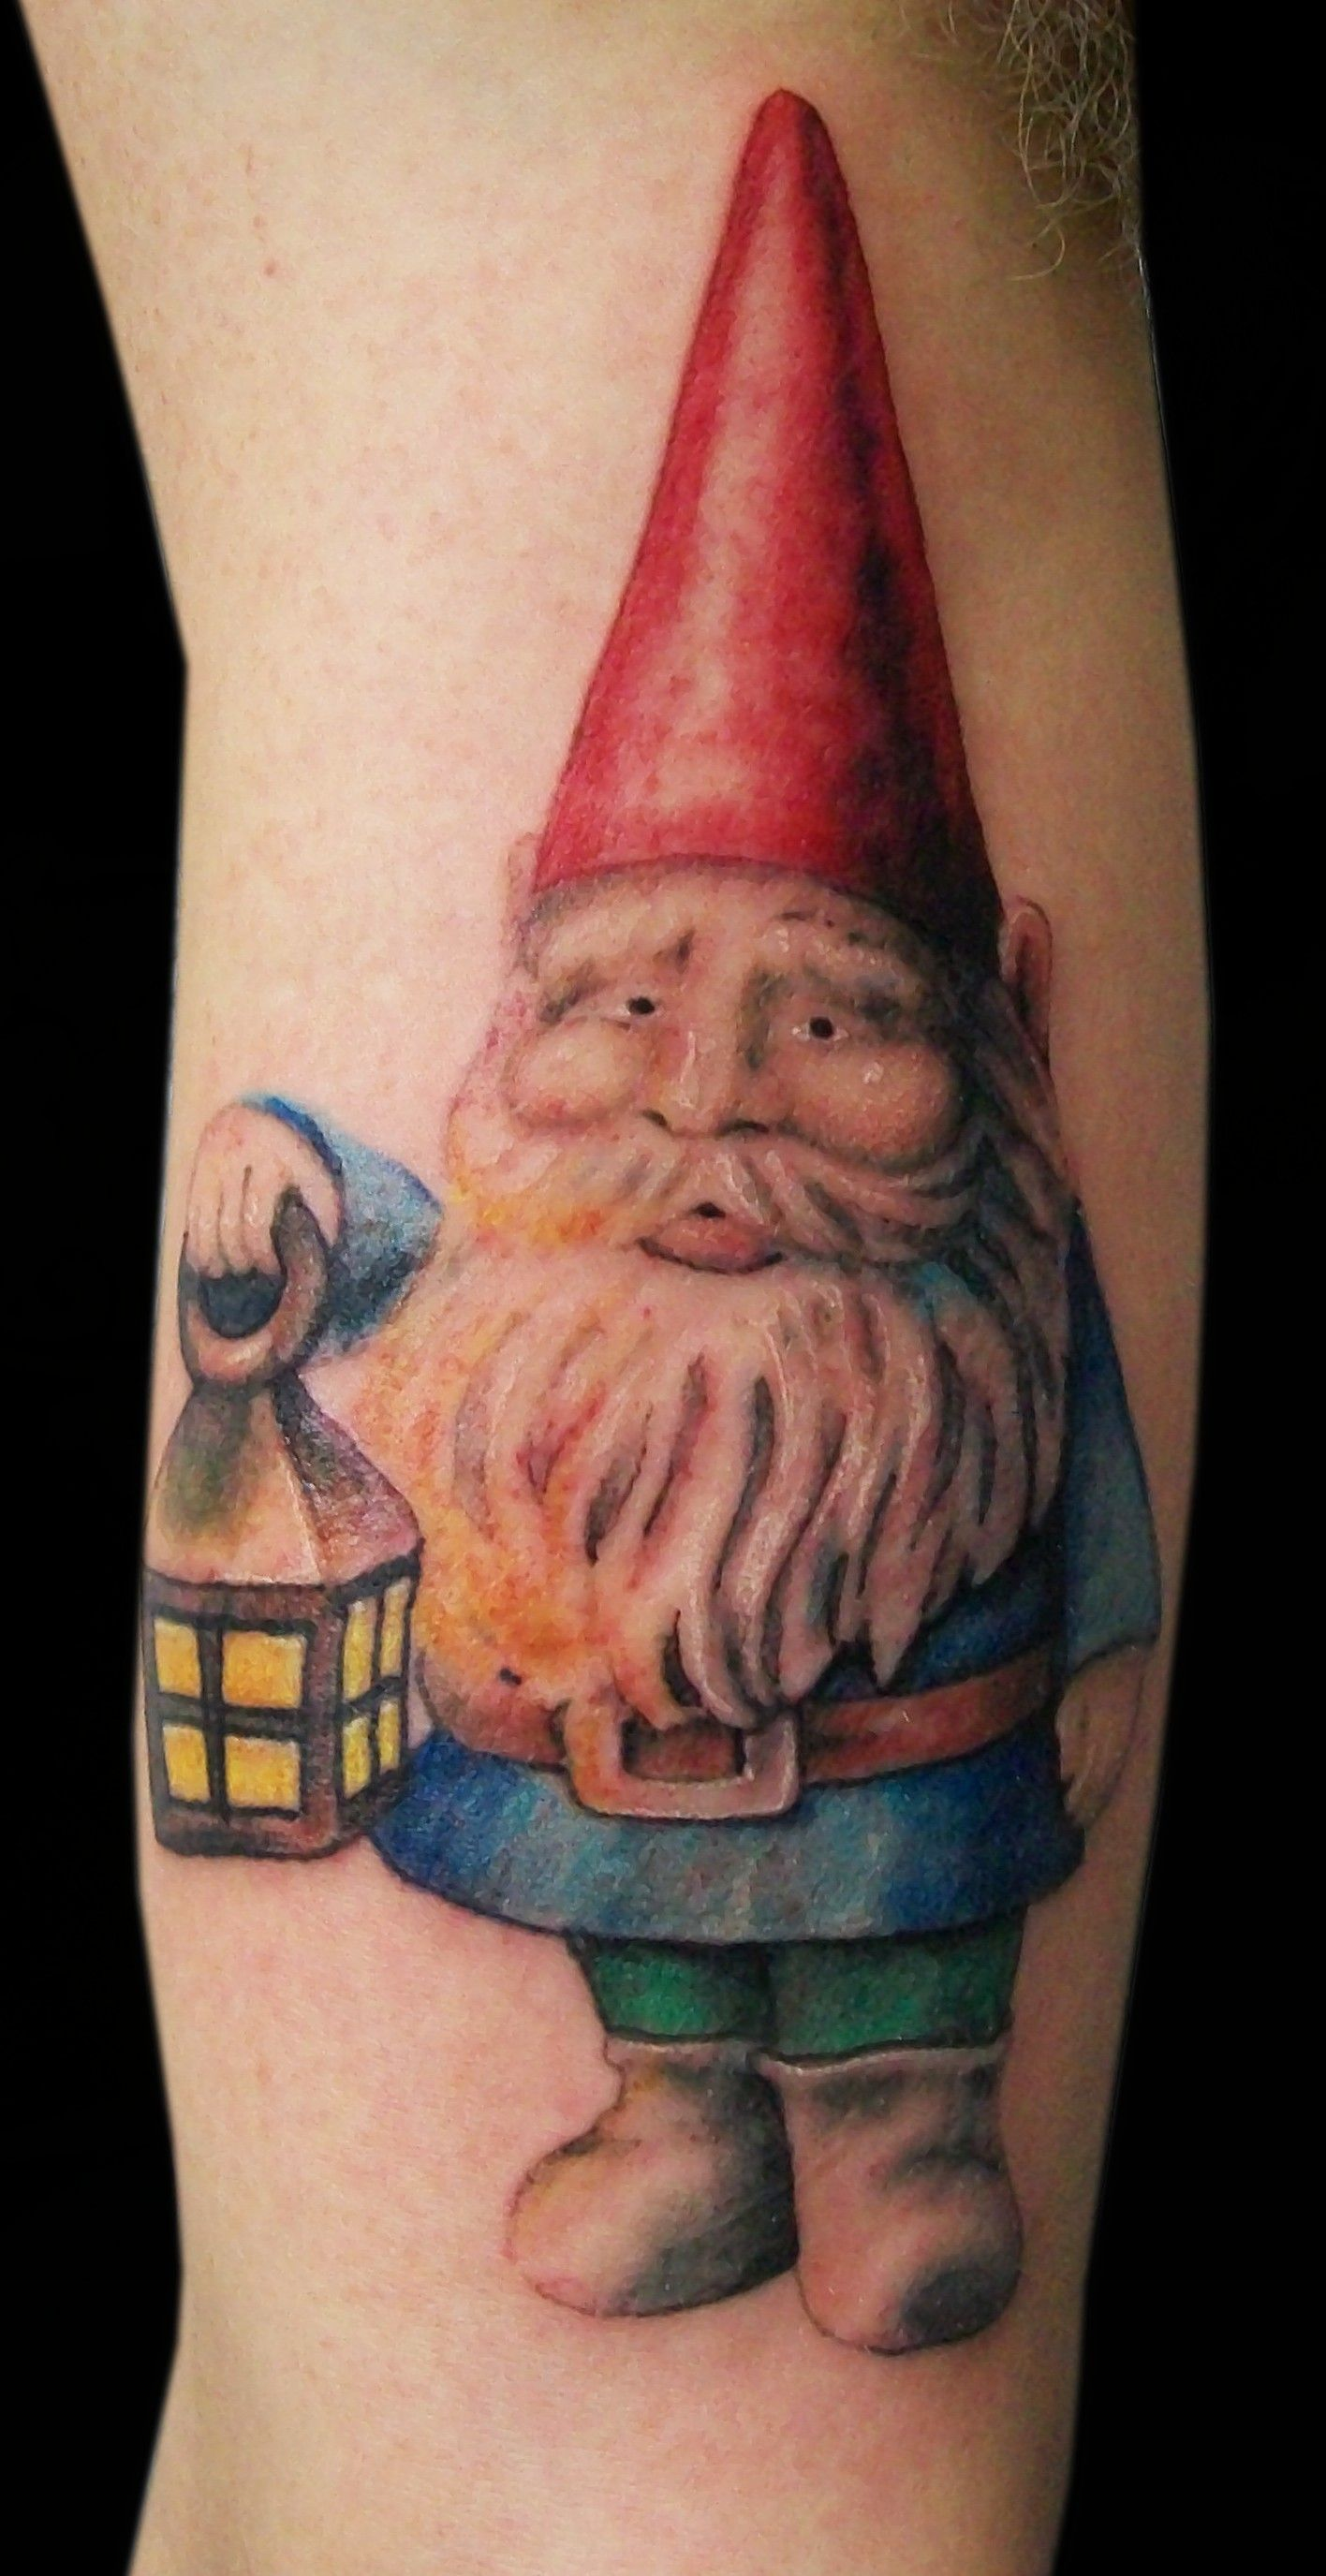 garden gnome tattoo inspiring things and tattoos